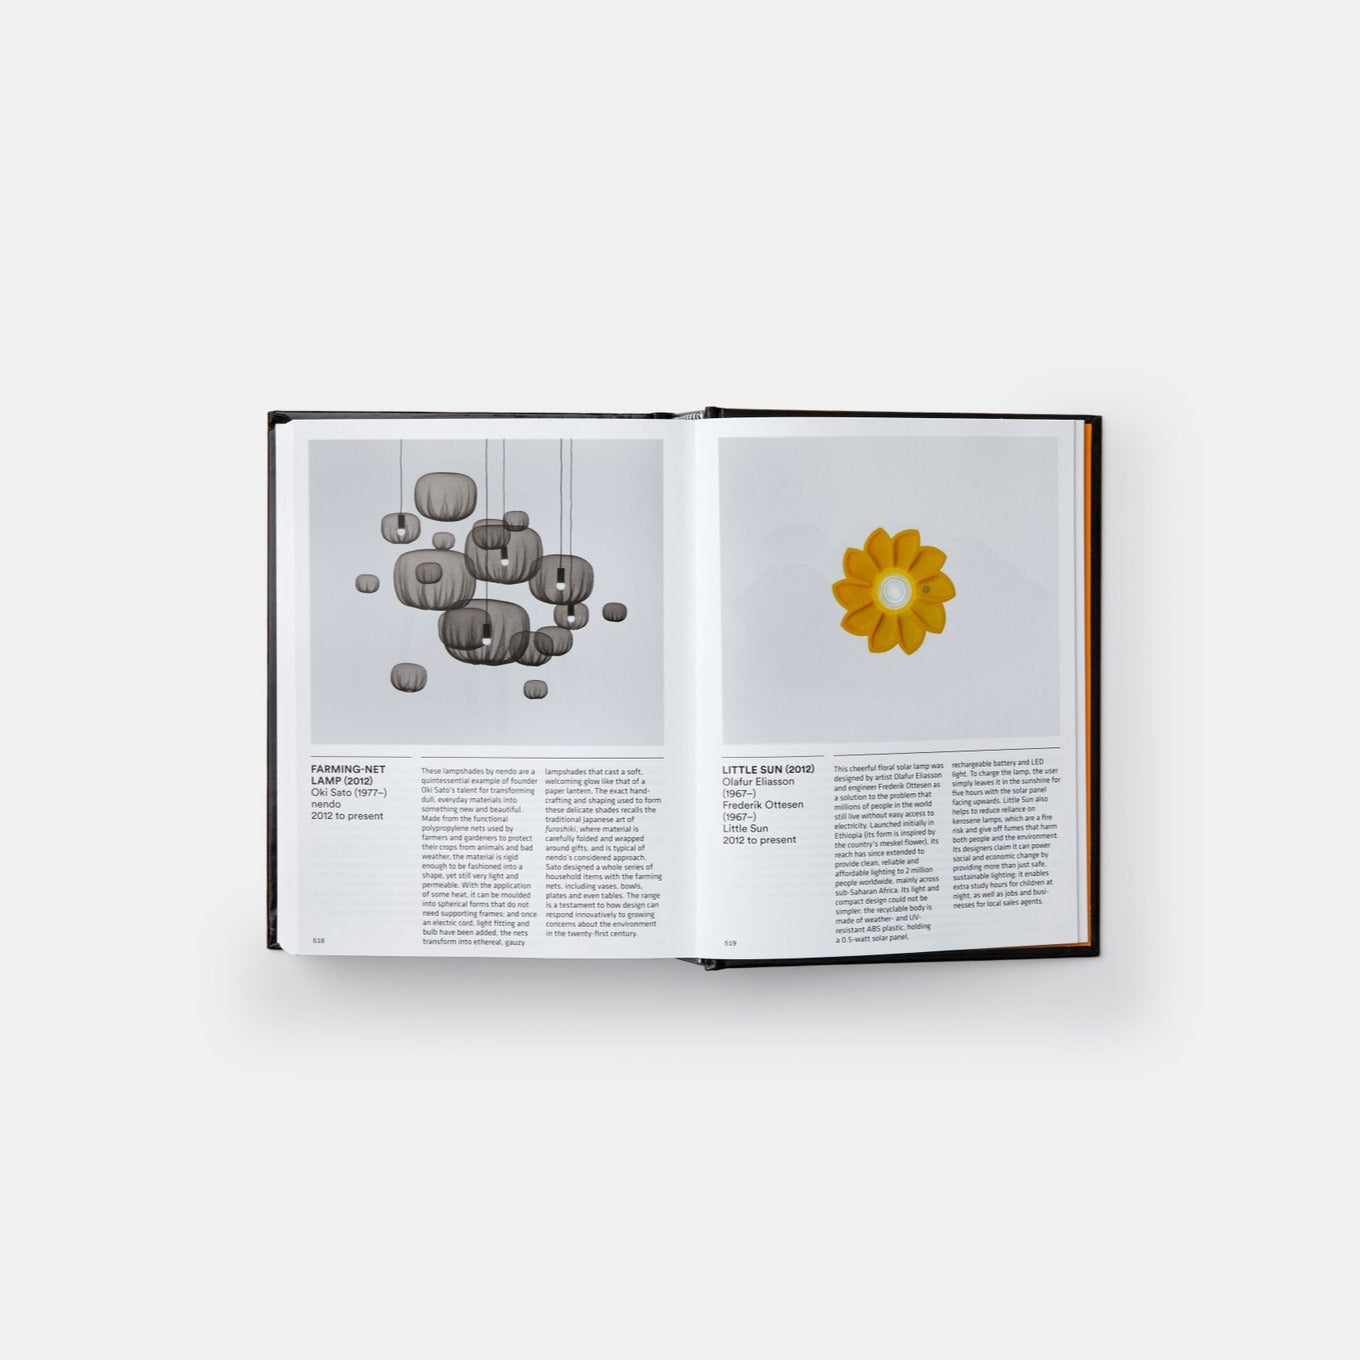 The Design Book